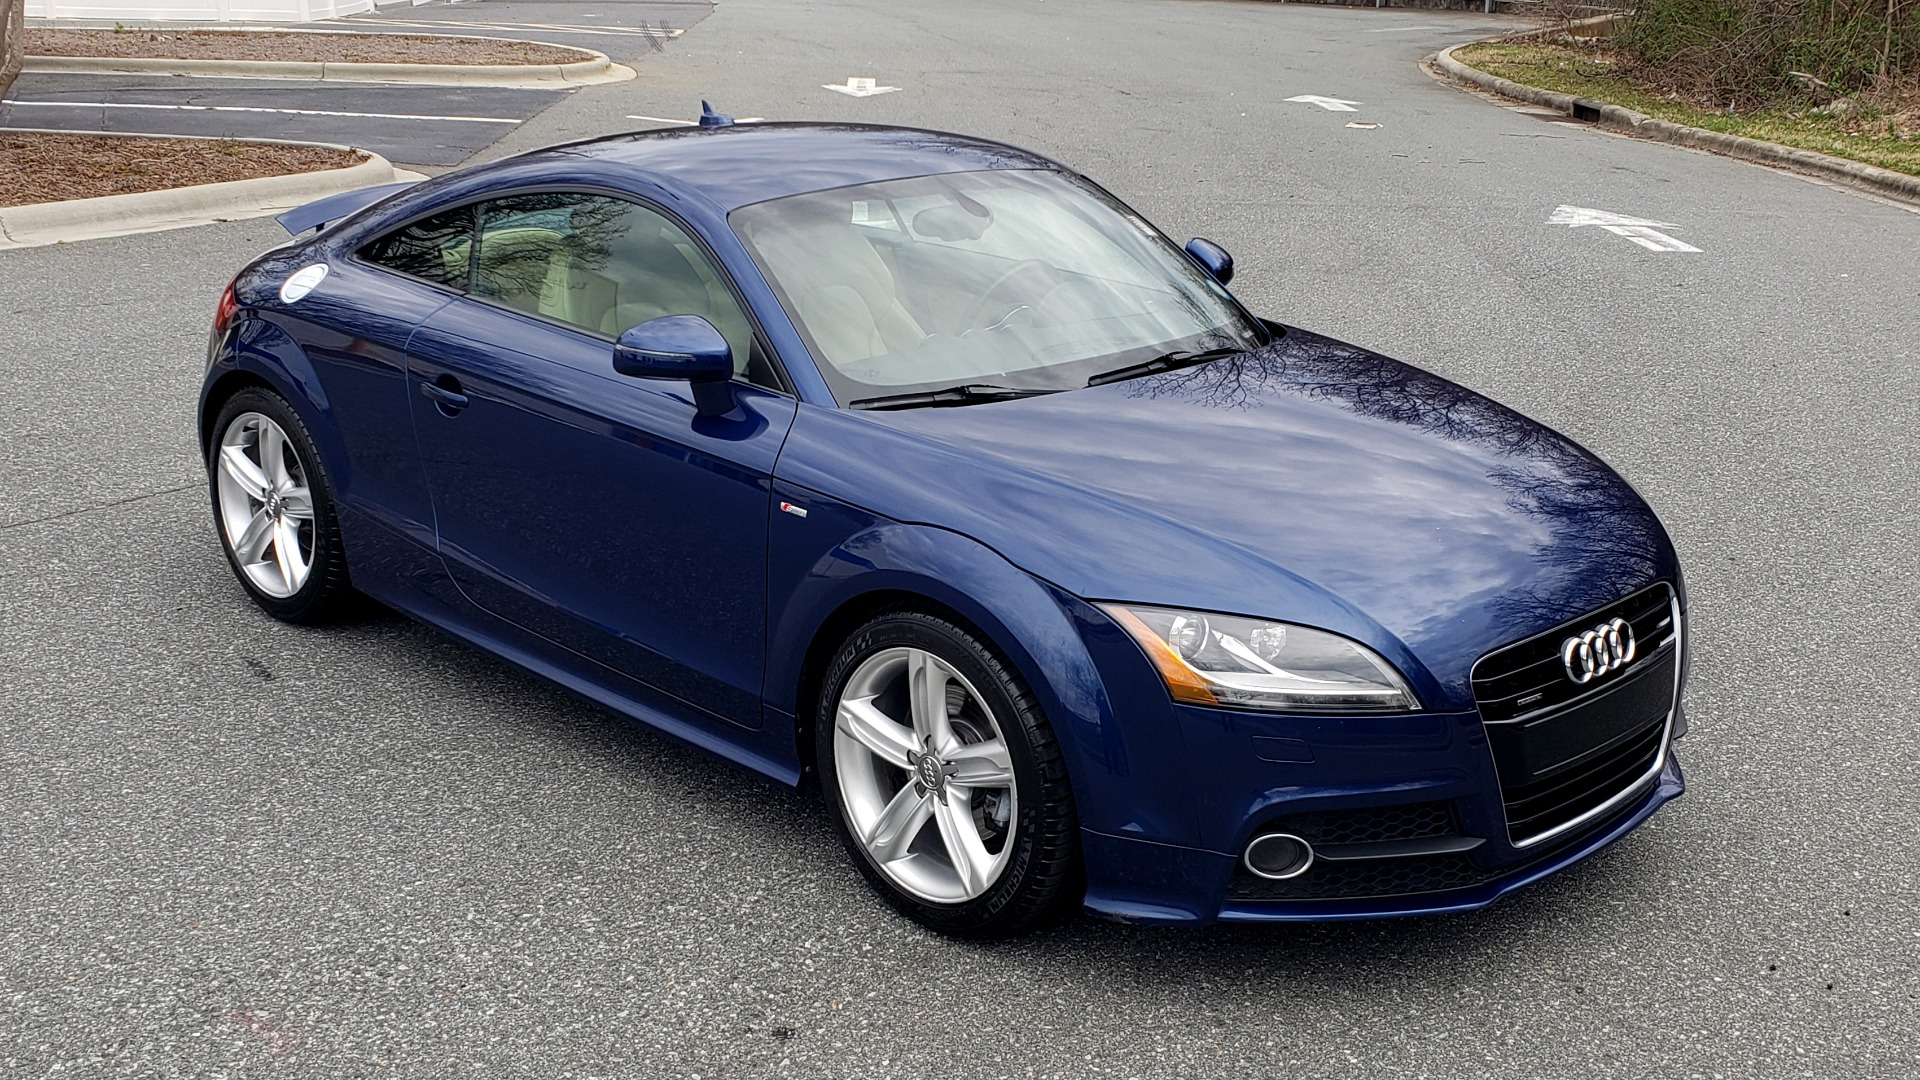 Used 2014 Audi TT 2.0T S-TRONIC / COUPE / AWD / LEATHER / HEATED SEATS for sale Sold at Formula Imports in Charlotte NC 28227 5